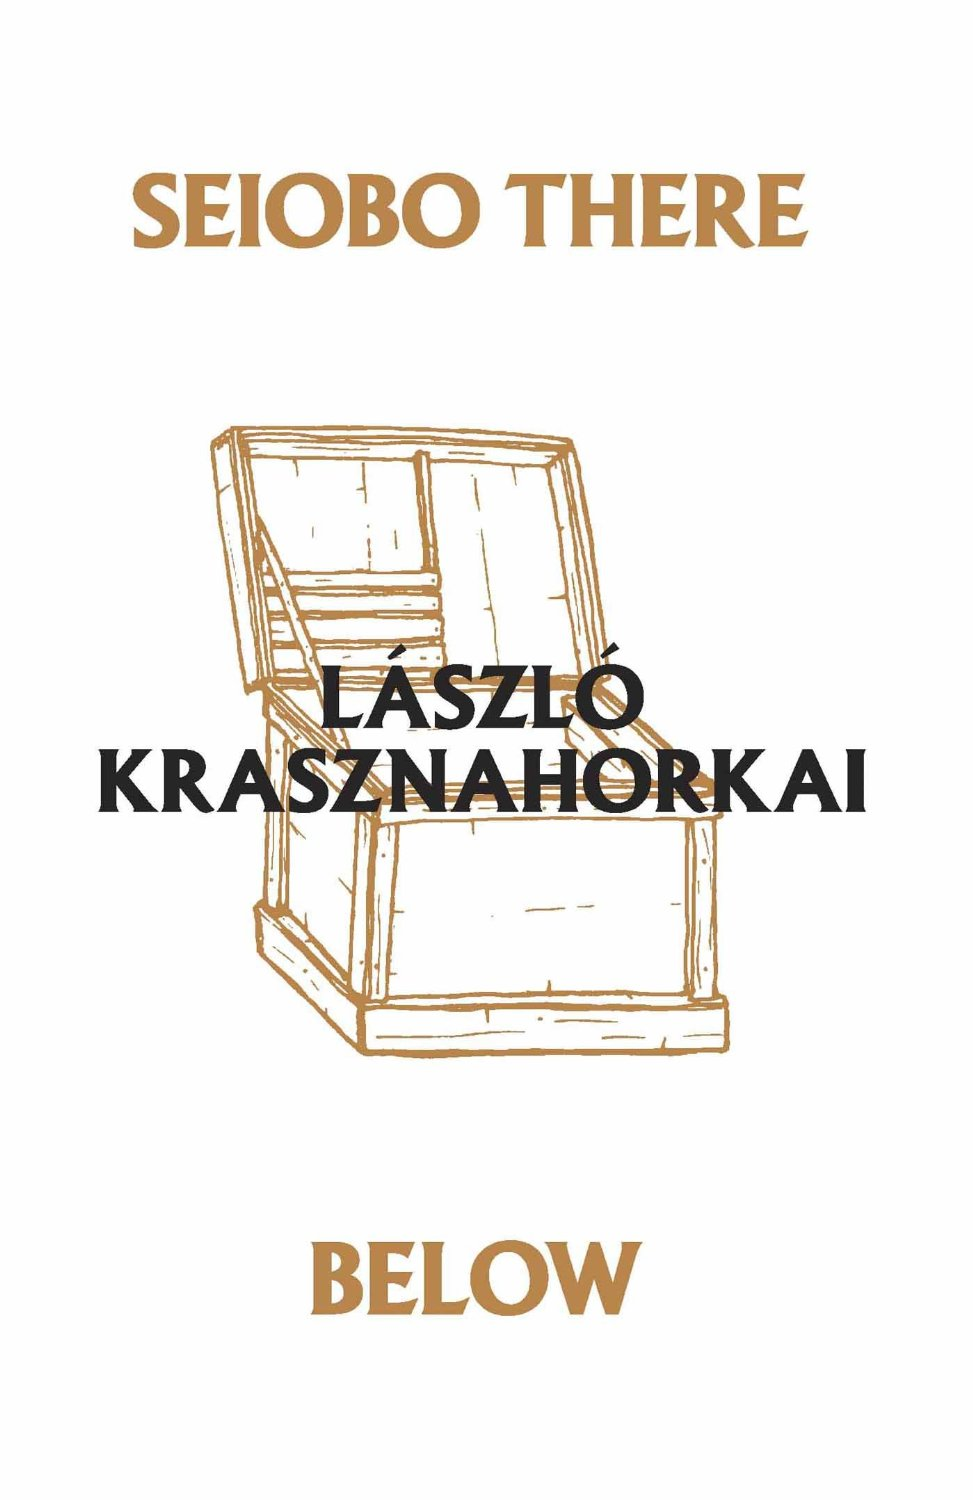 by László Krasznahorkai, translated from HUNGARIAN by Ottilie Mulzet